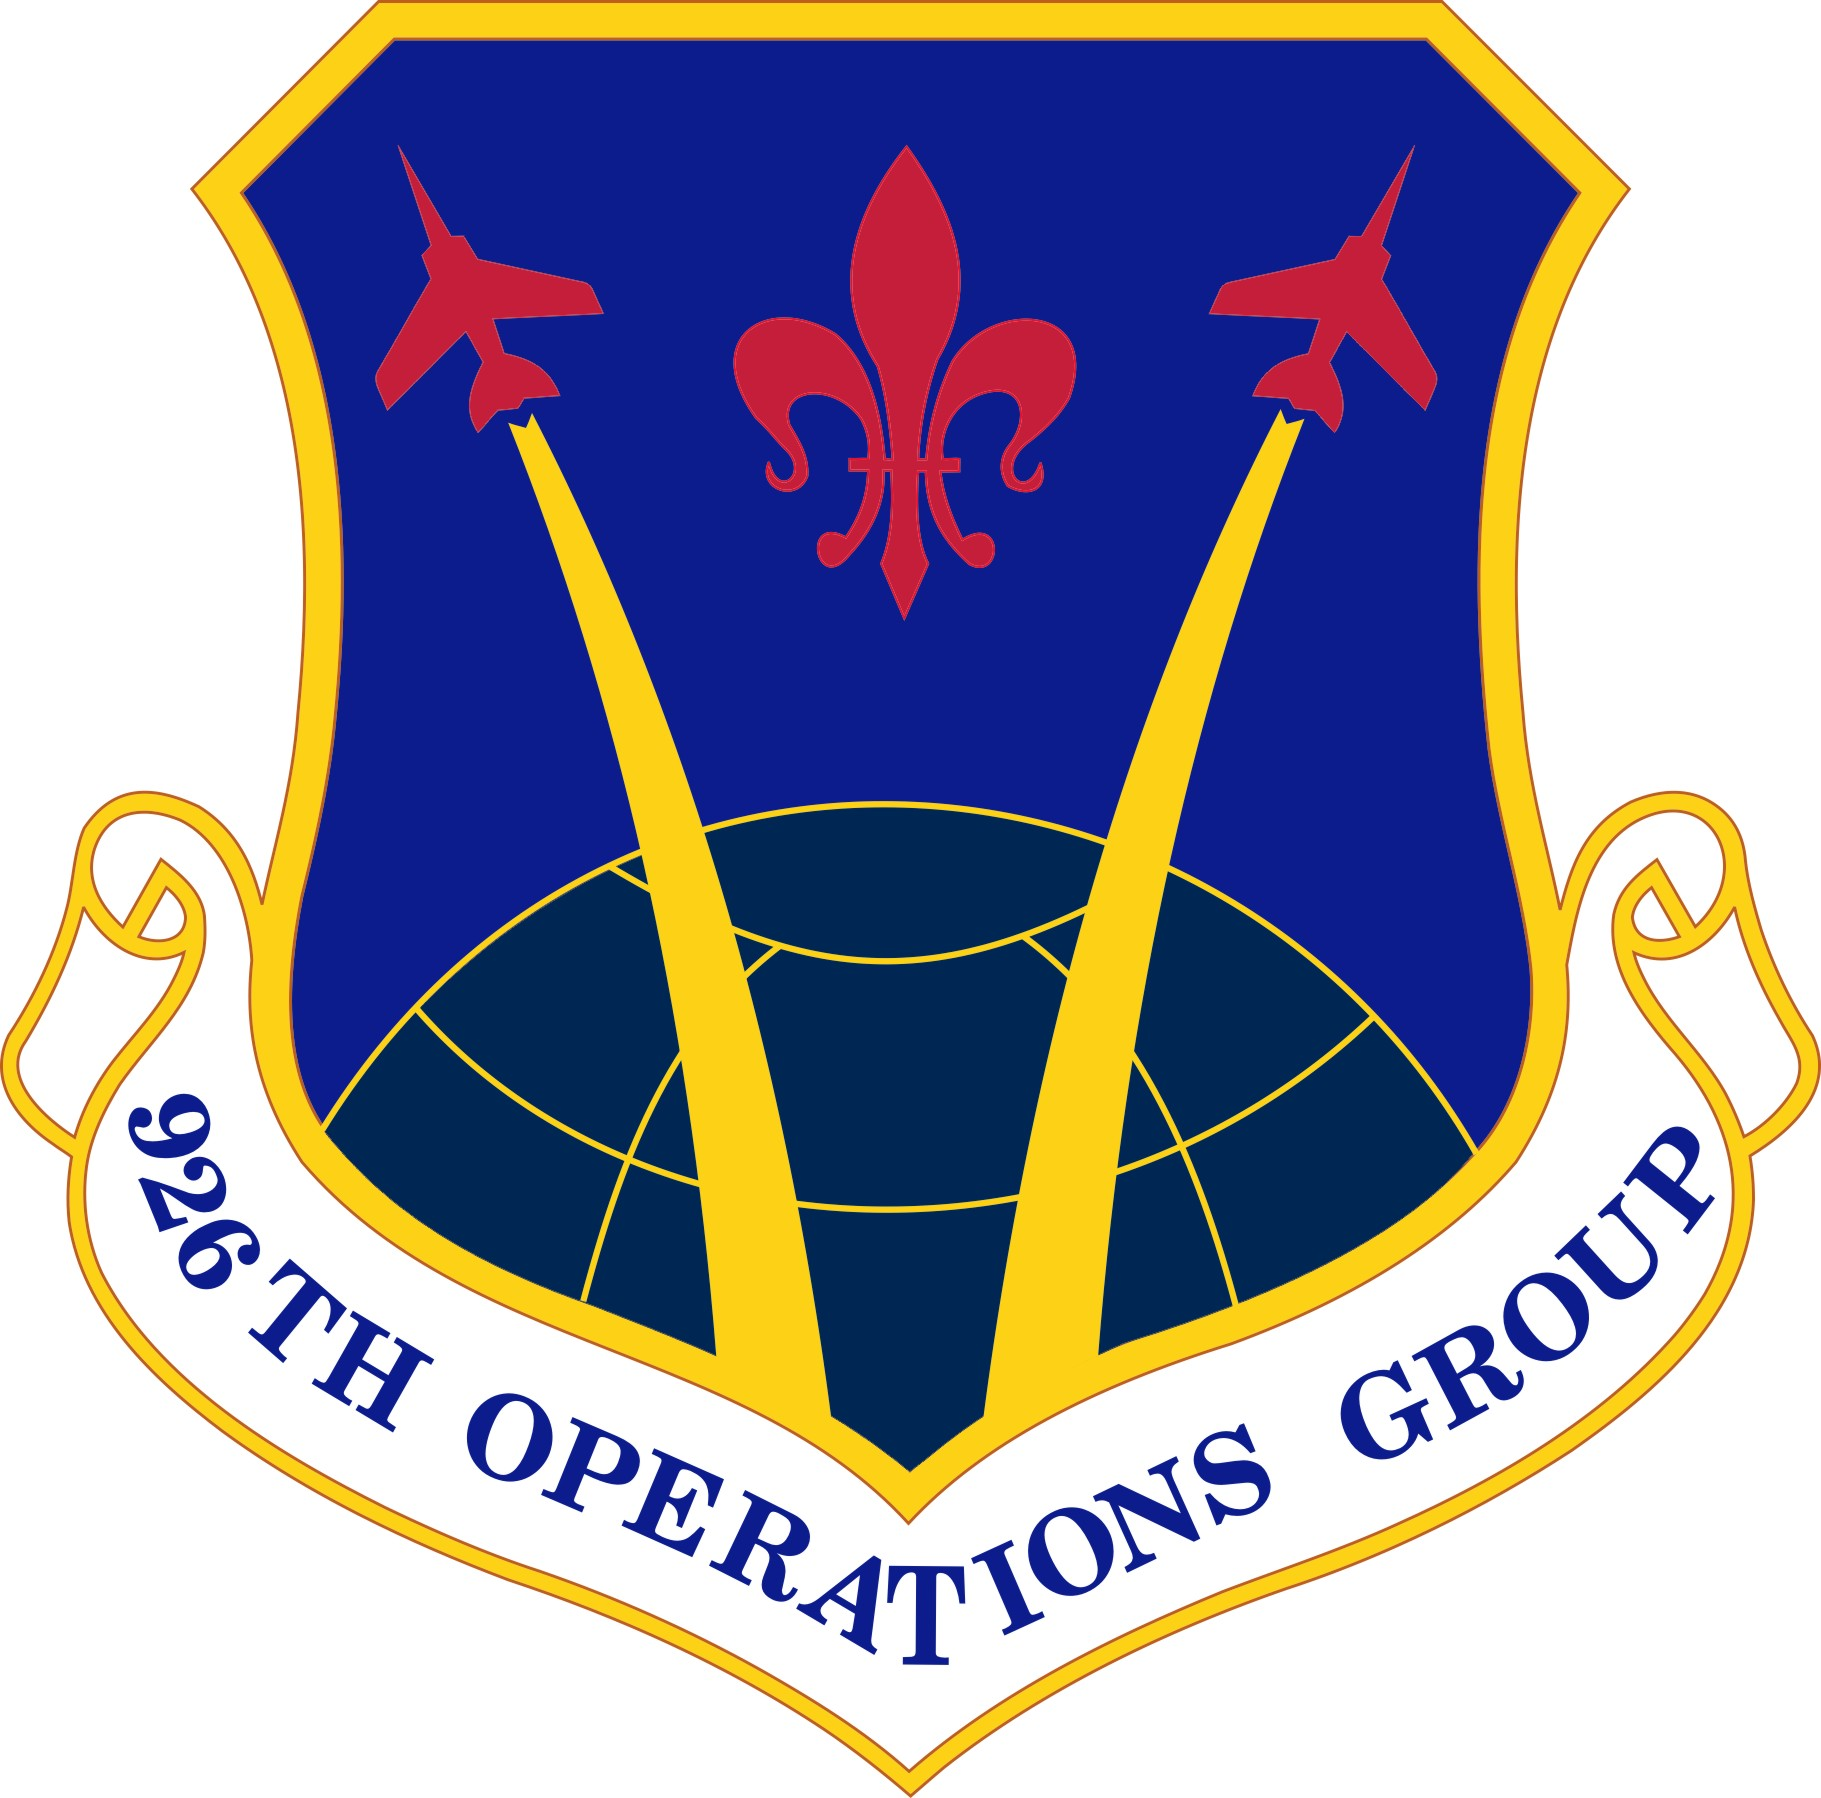 926th Operations Group patch